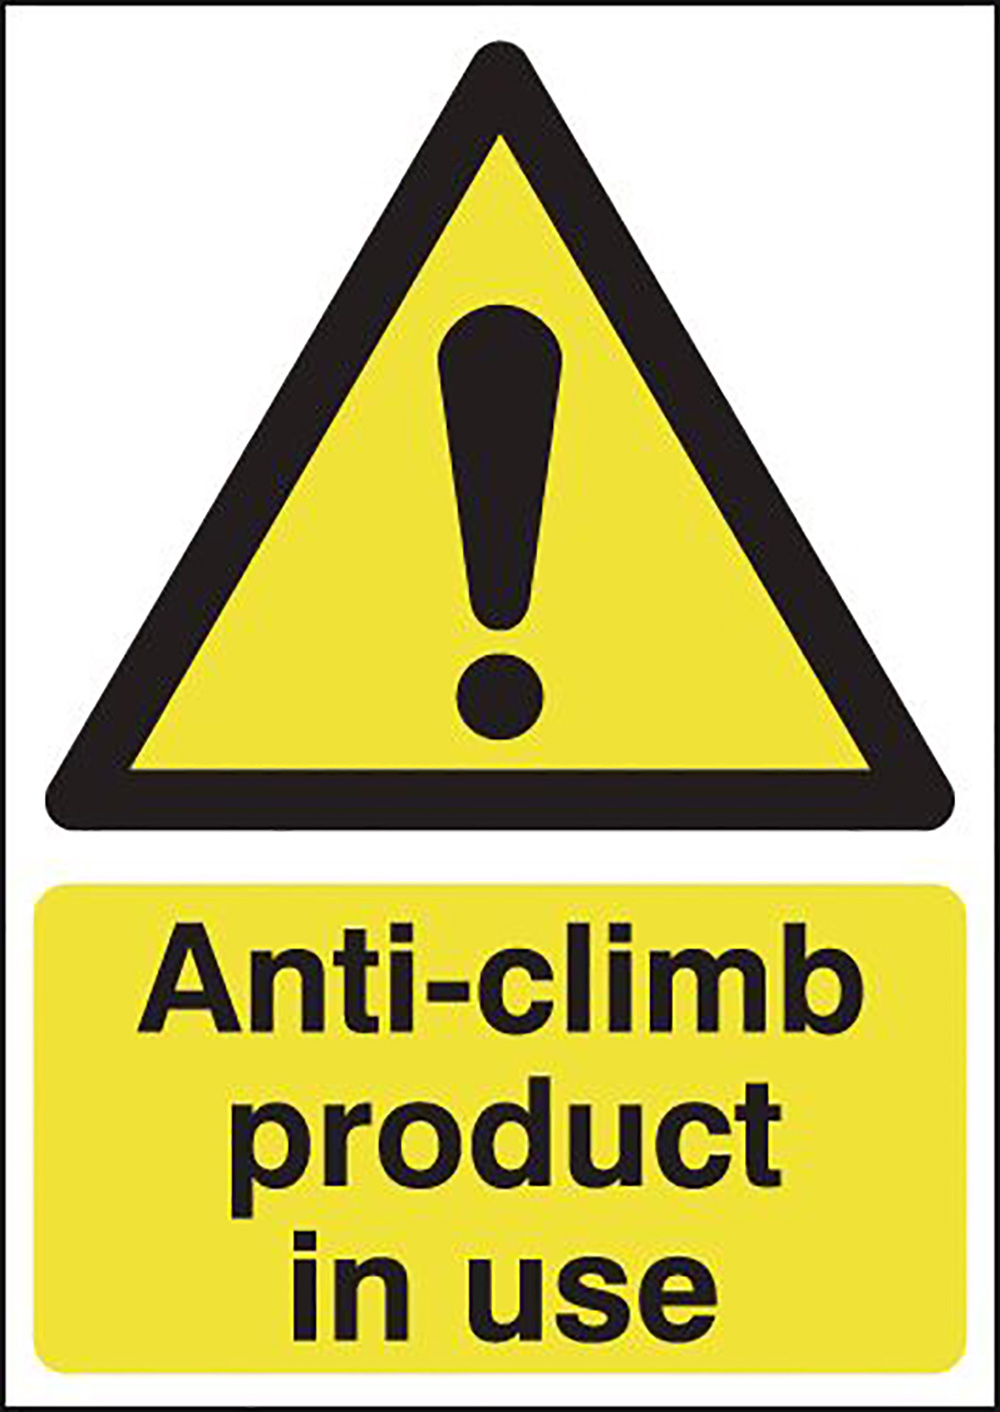 Anti-climb Product In Use 420x297mm 1.2mm Rigid Plastic Safety Sign